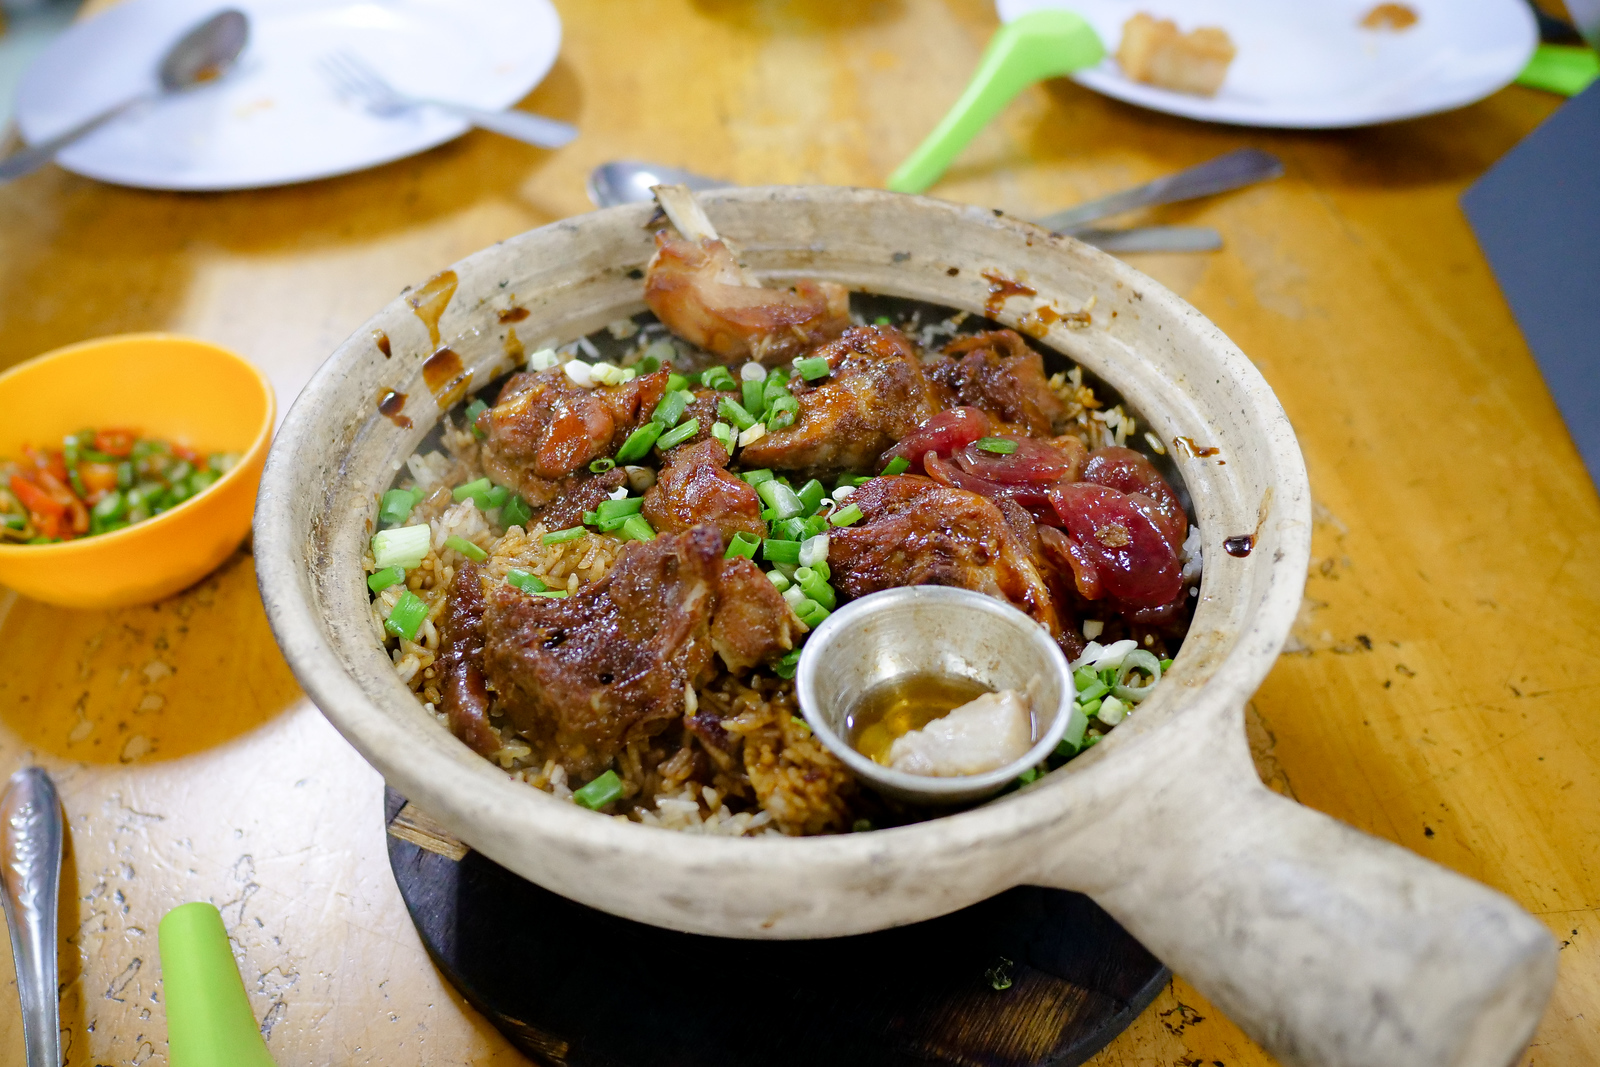 You have to order at least one claypot when you visit Heun Kee Claypot Chicken Rice on your next visit to Kuala lumpur, Malaysia